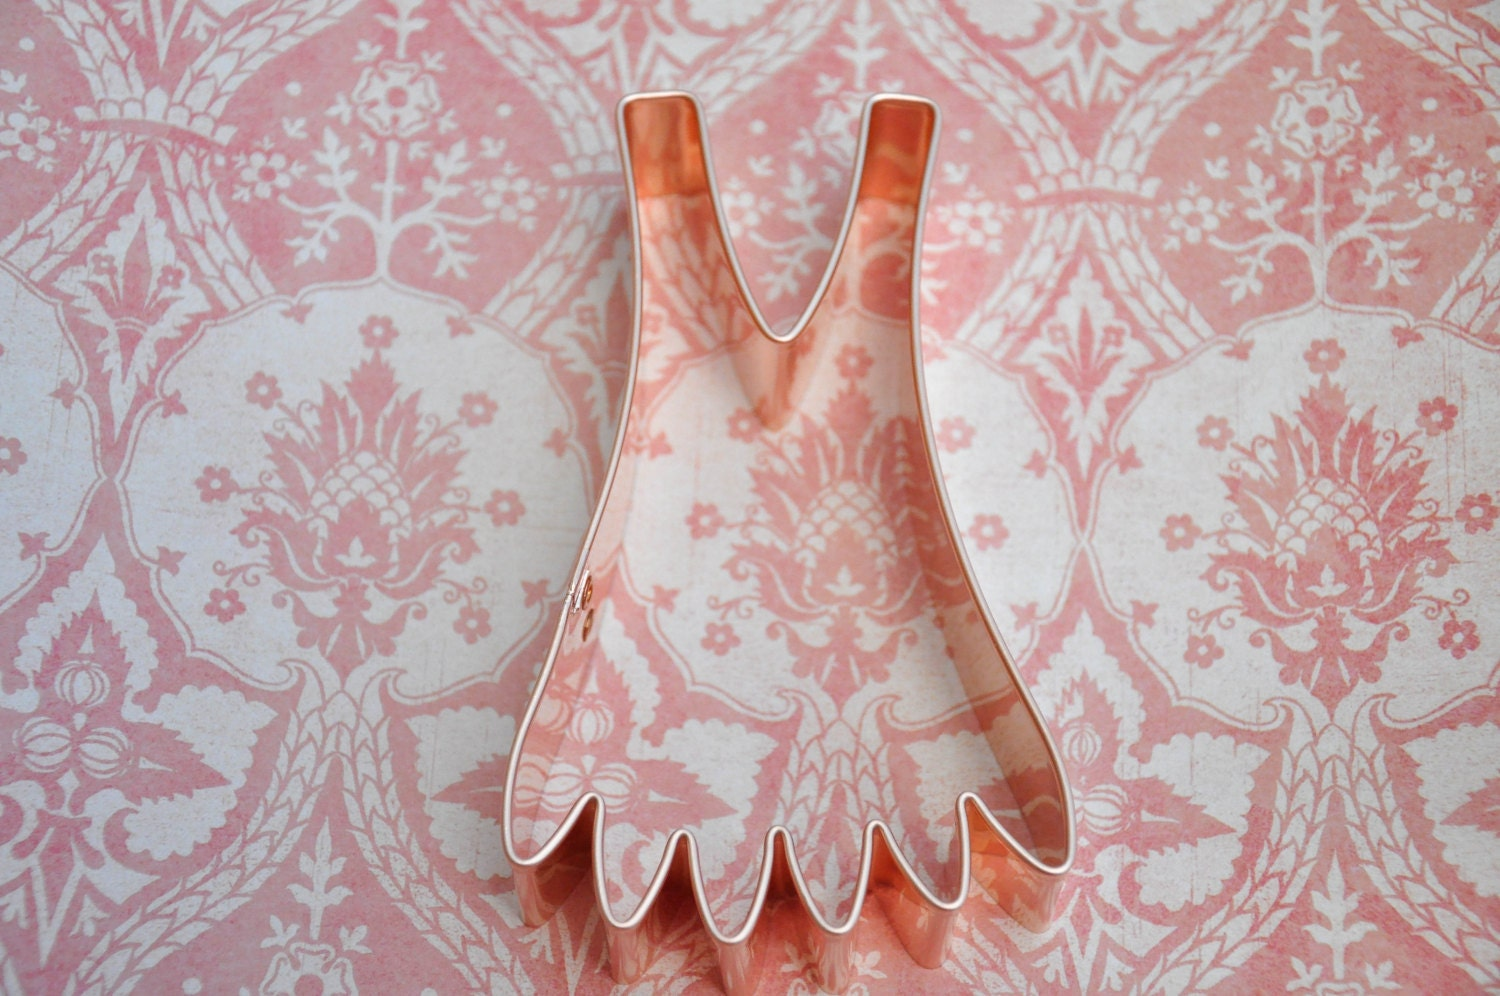 Flapper dress cookie cutter, ecrandal copper cutter (5.25x3) from ...